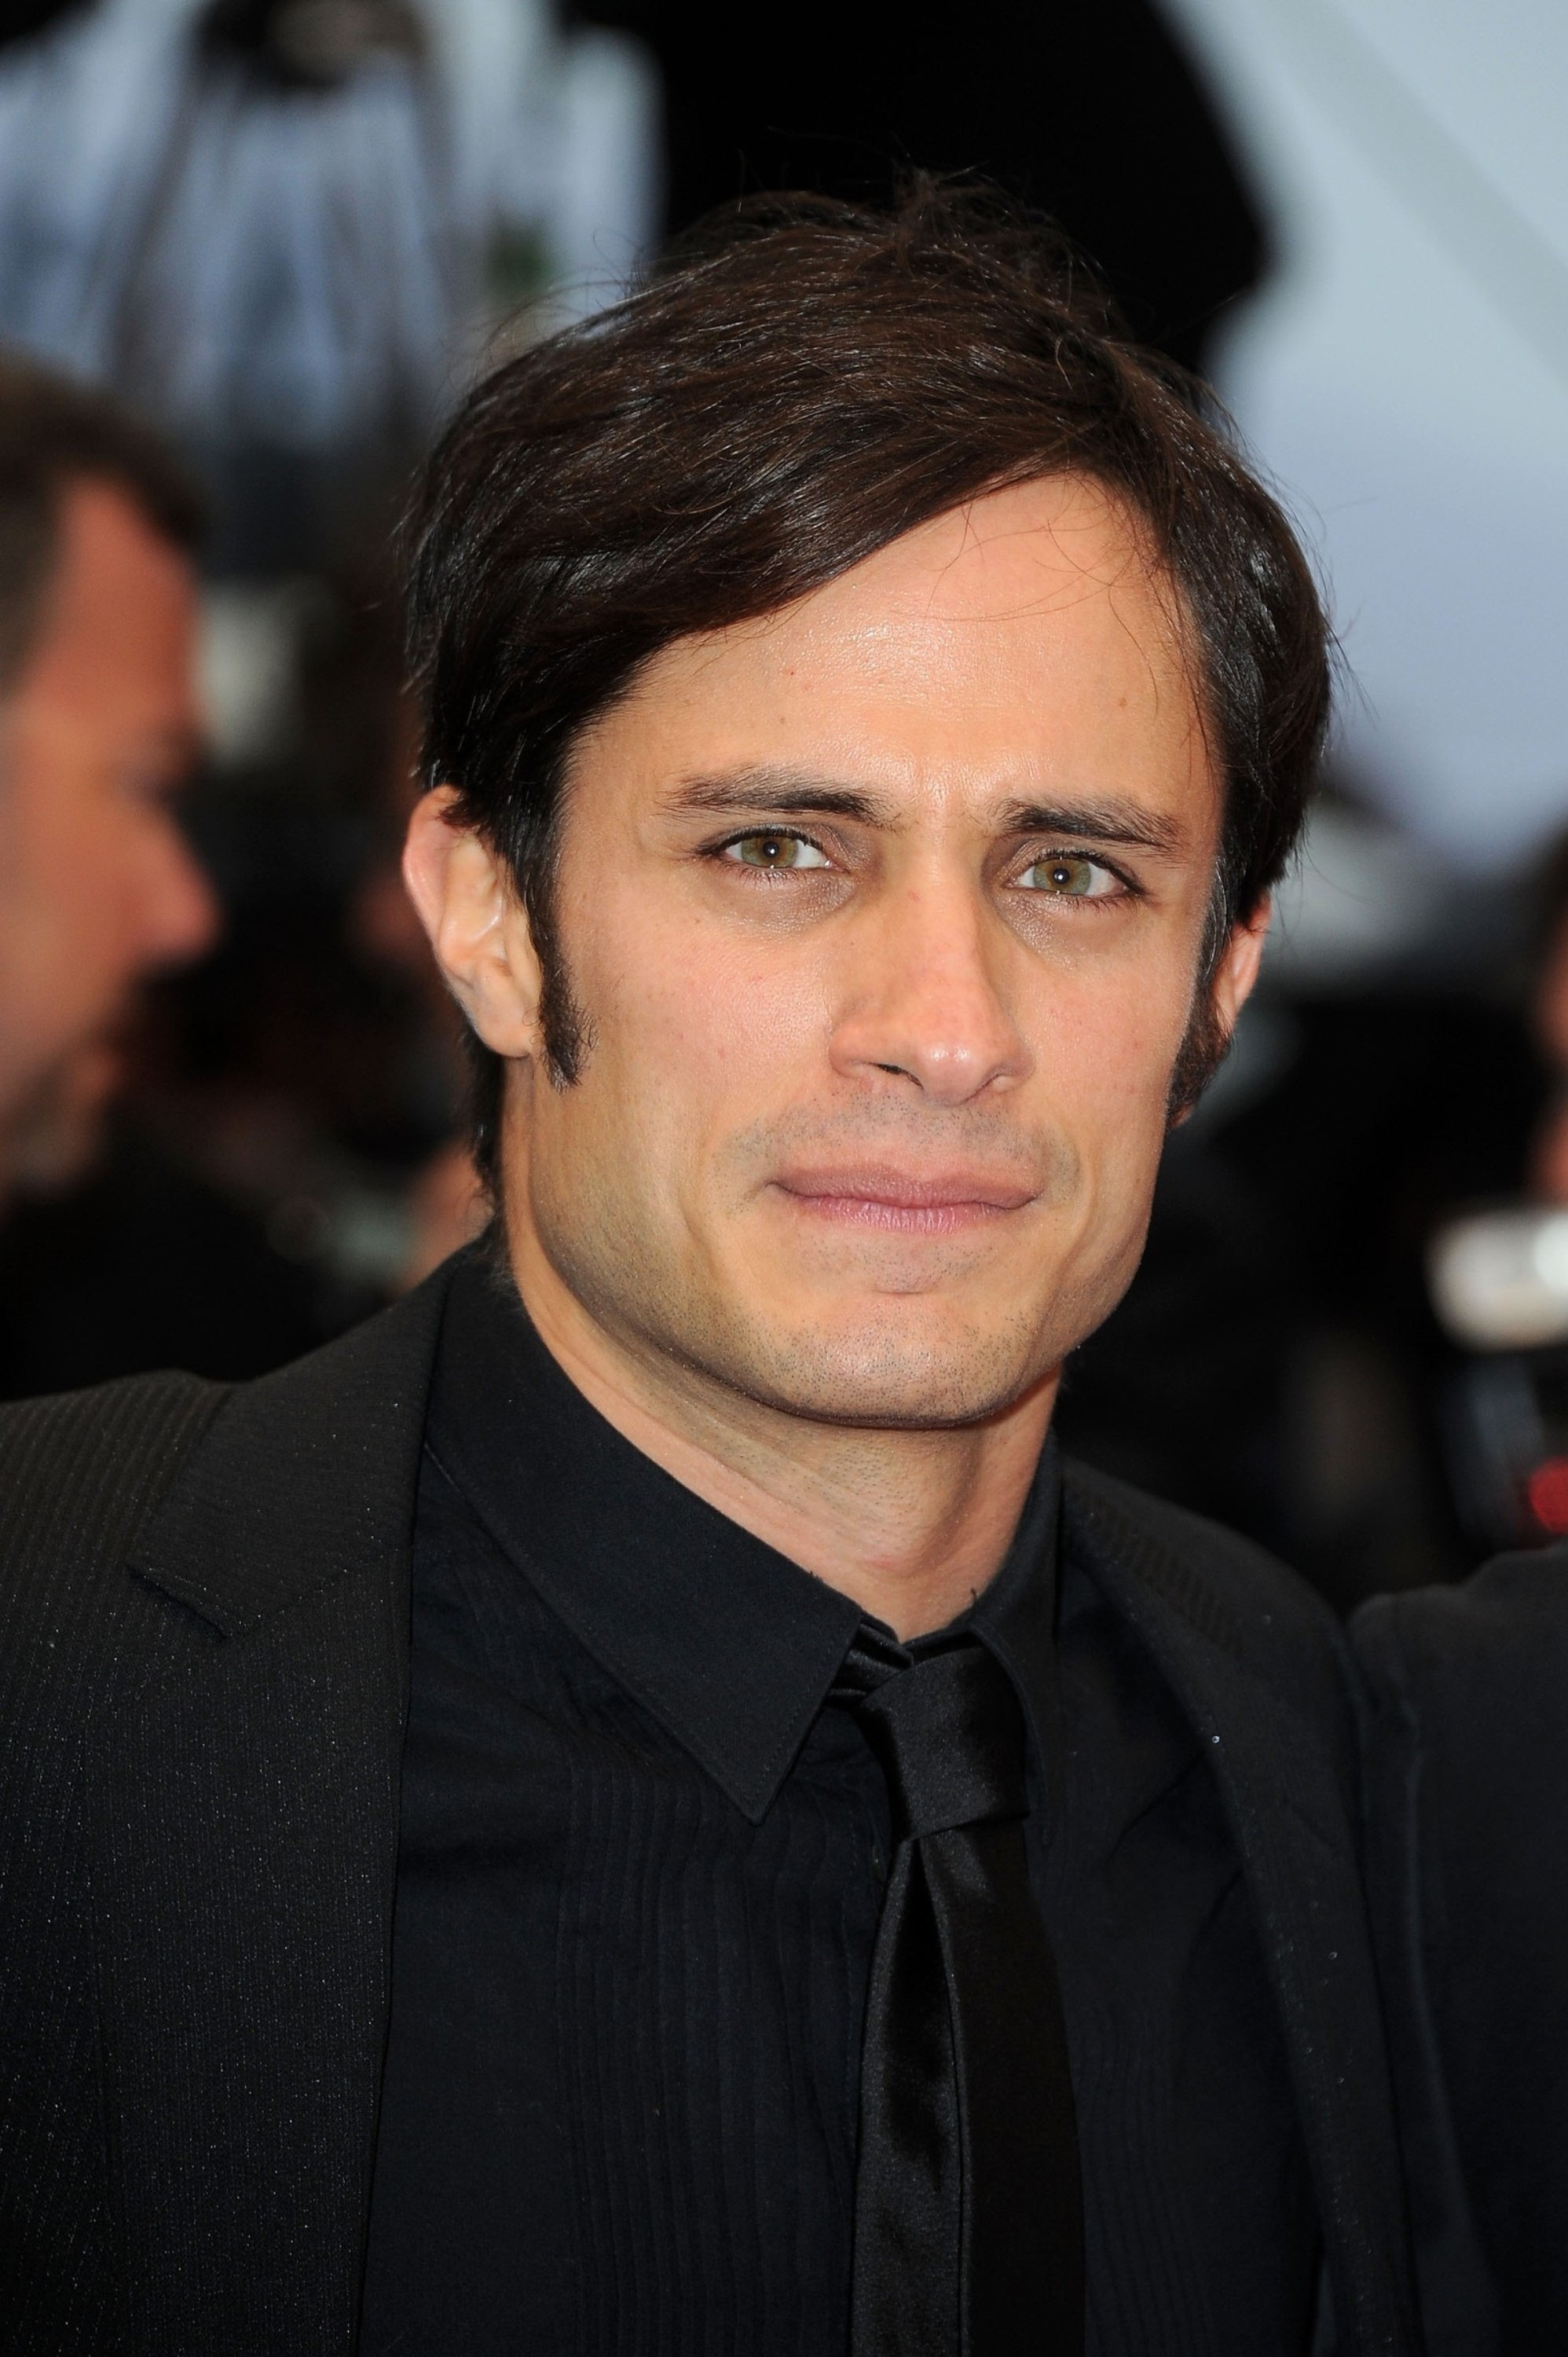 Gael Garcia Bernal photo #405595